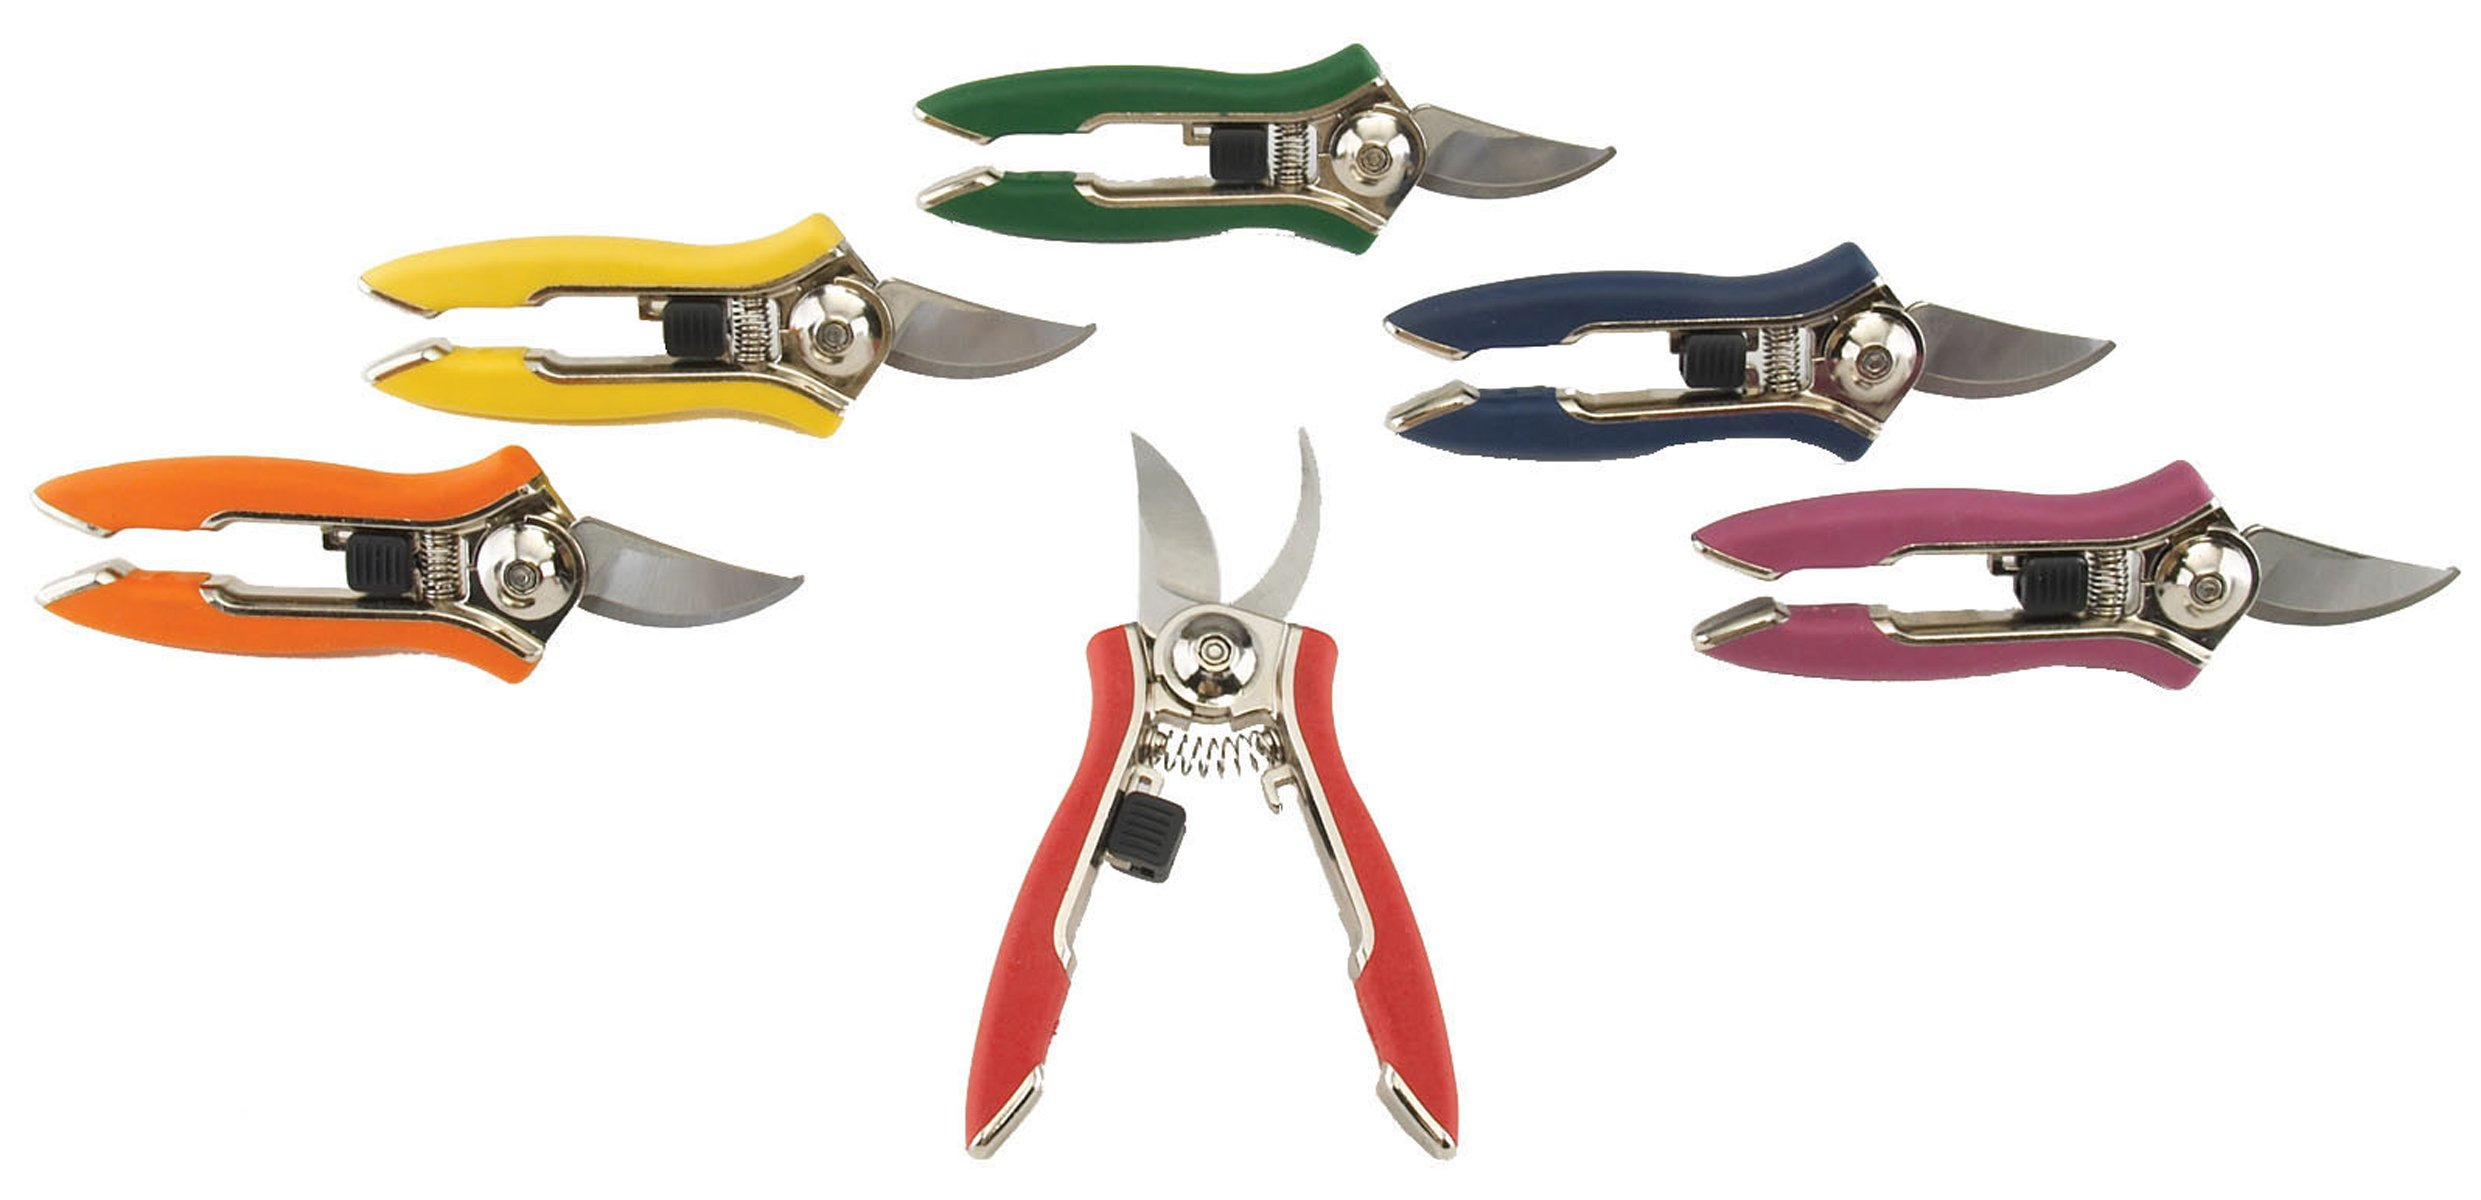 The Classic Set 12 of Compact Pruner